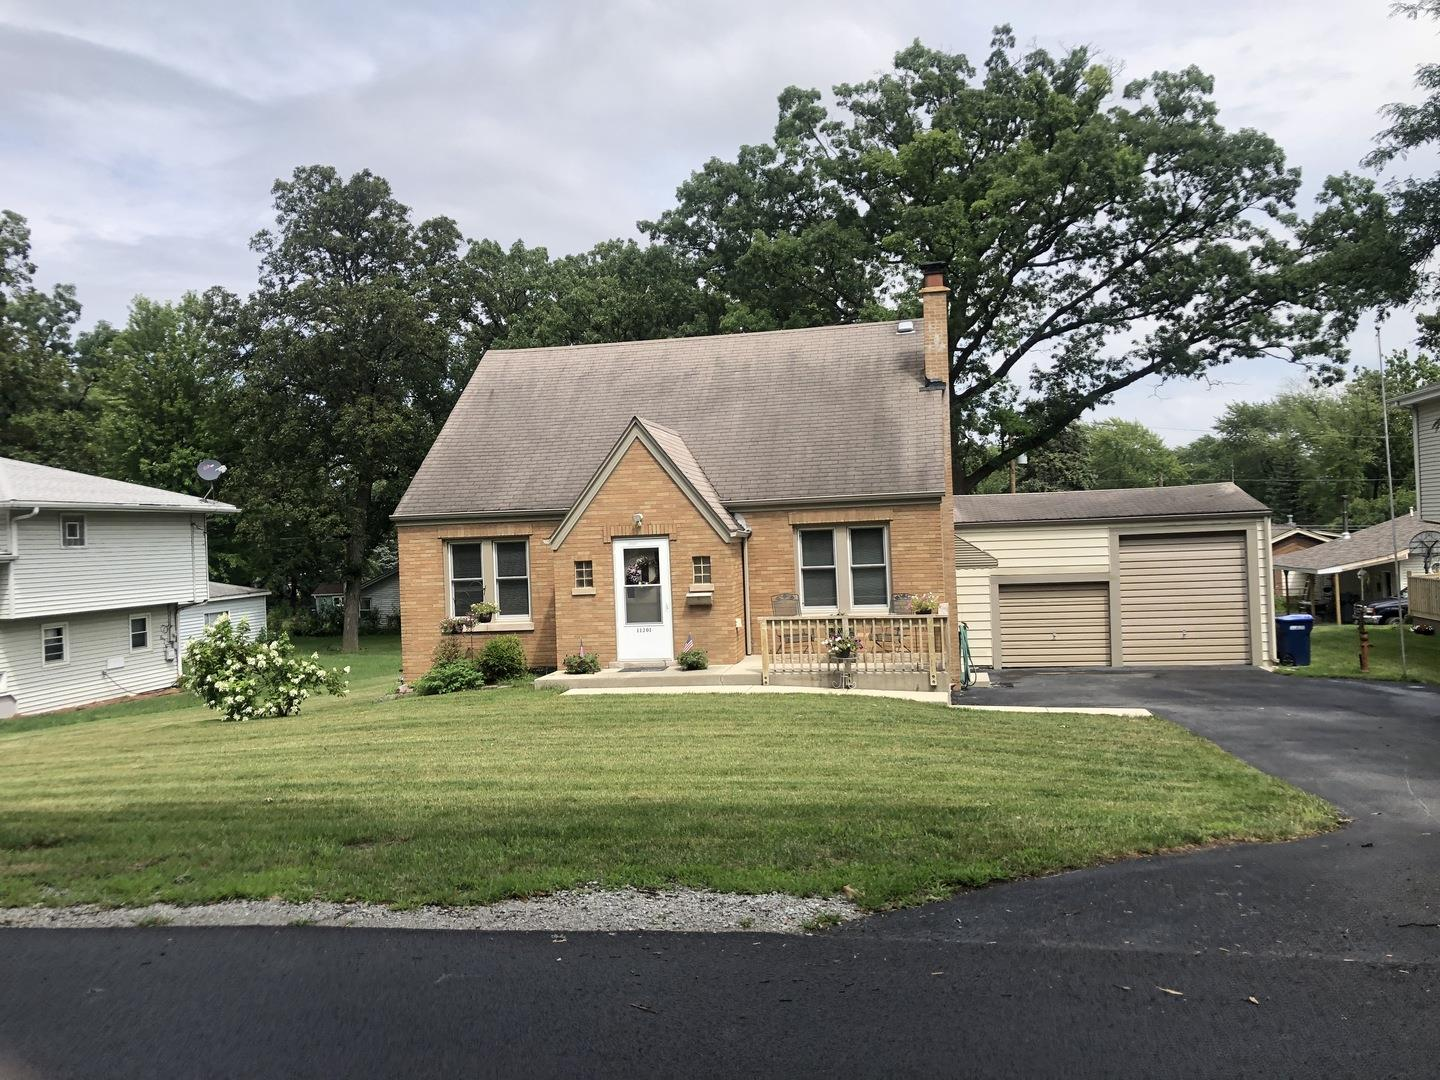 11201 S Worth Avenue, Worth, IL 60482 - #: 11052764